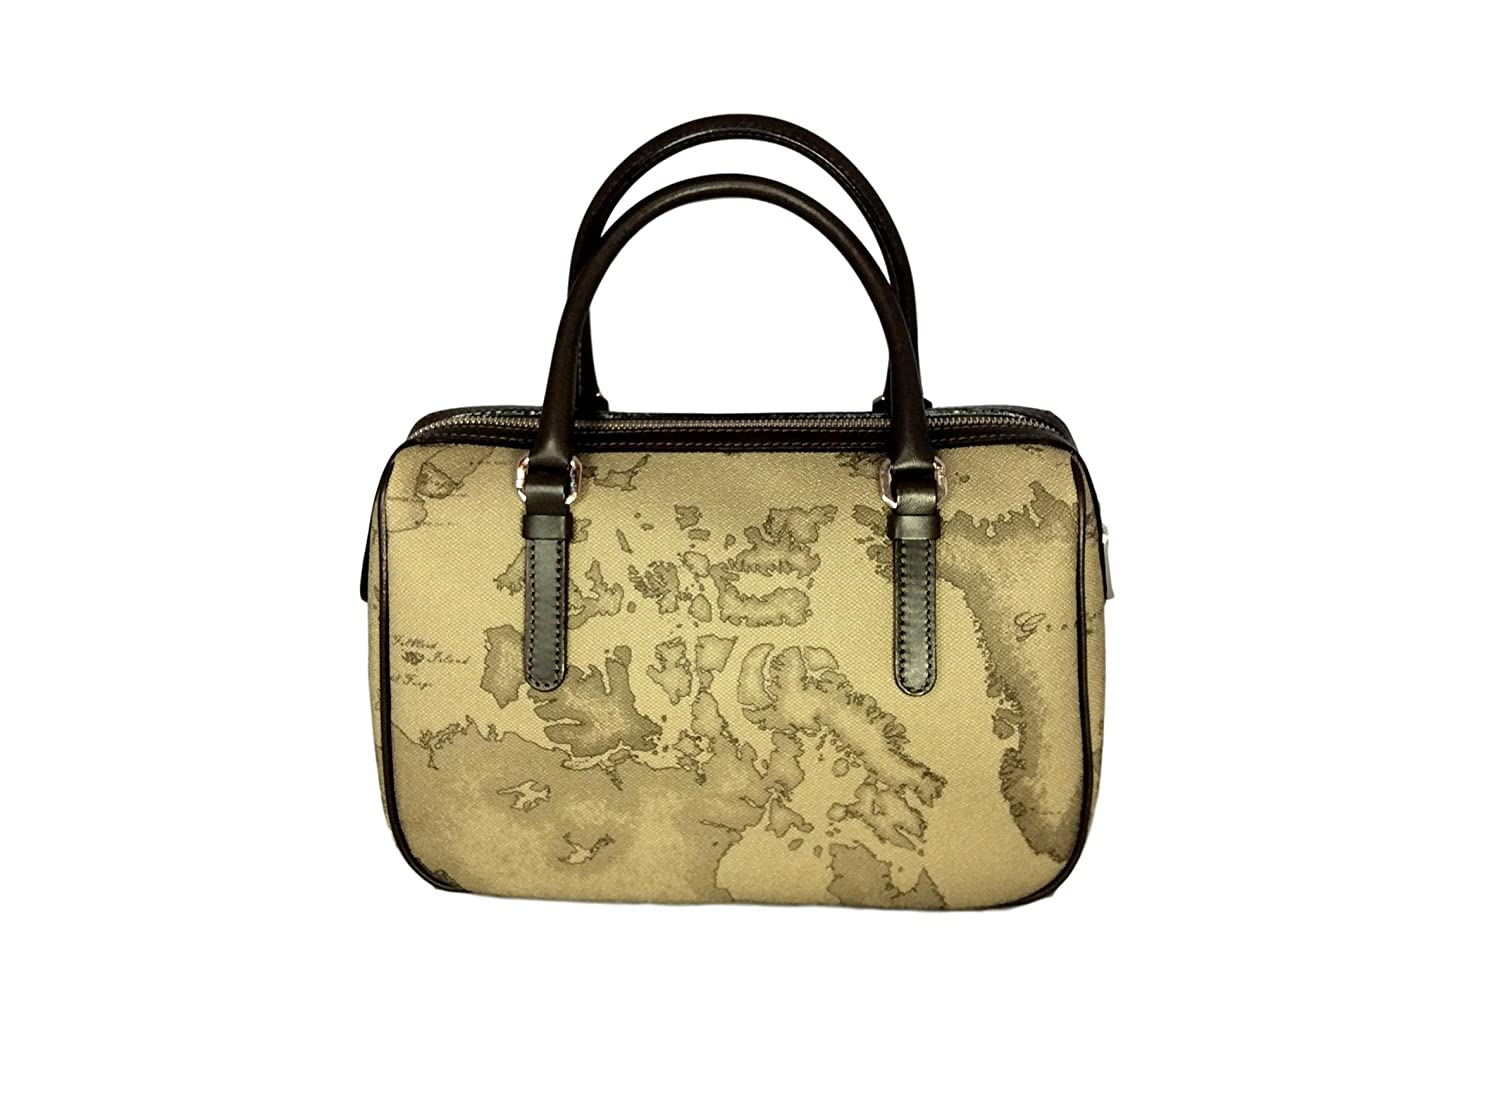 ALVIERO MARTINI PRIMA CLASSE Borsa a mano media in stampa geo TAUPE  CN1286130  Amazon.it  Scarpe e borse aff5e298995